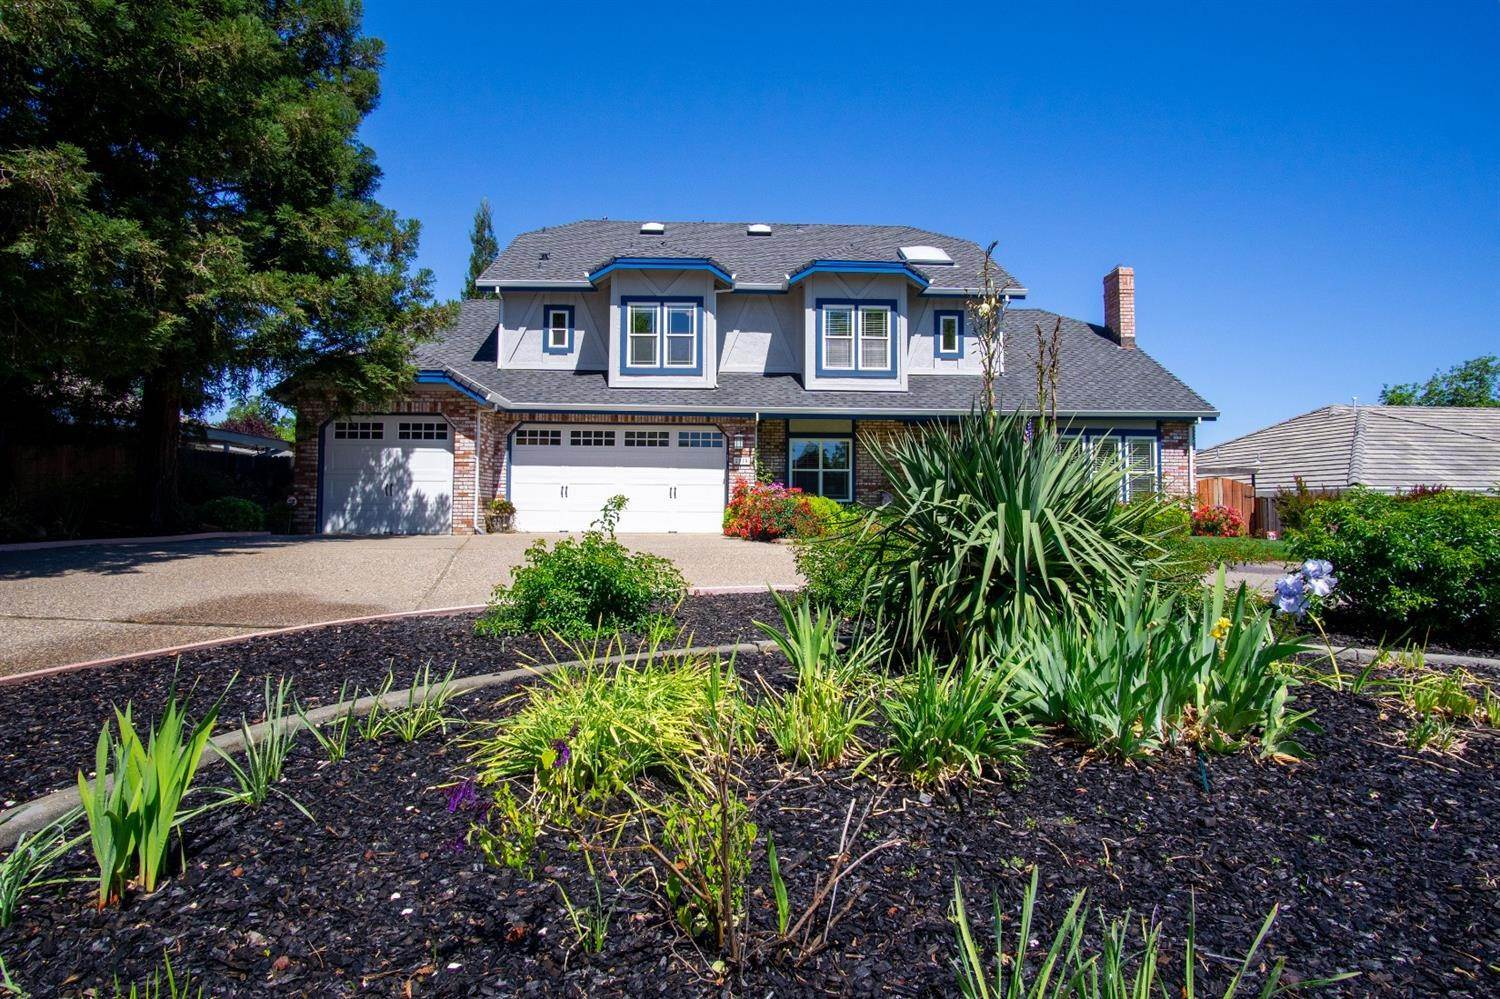 Single Family Homes for Active at 2010 Nicklaus Circle Roseville, California 95678 United States